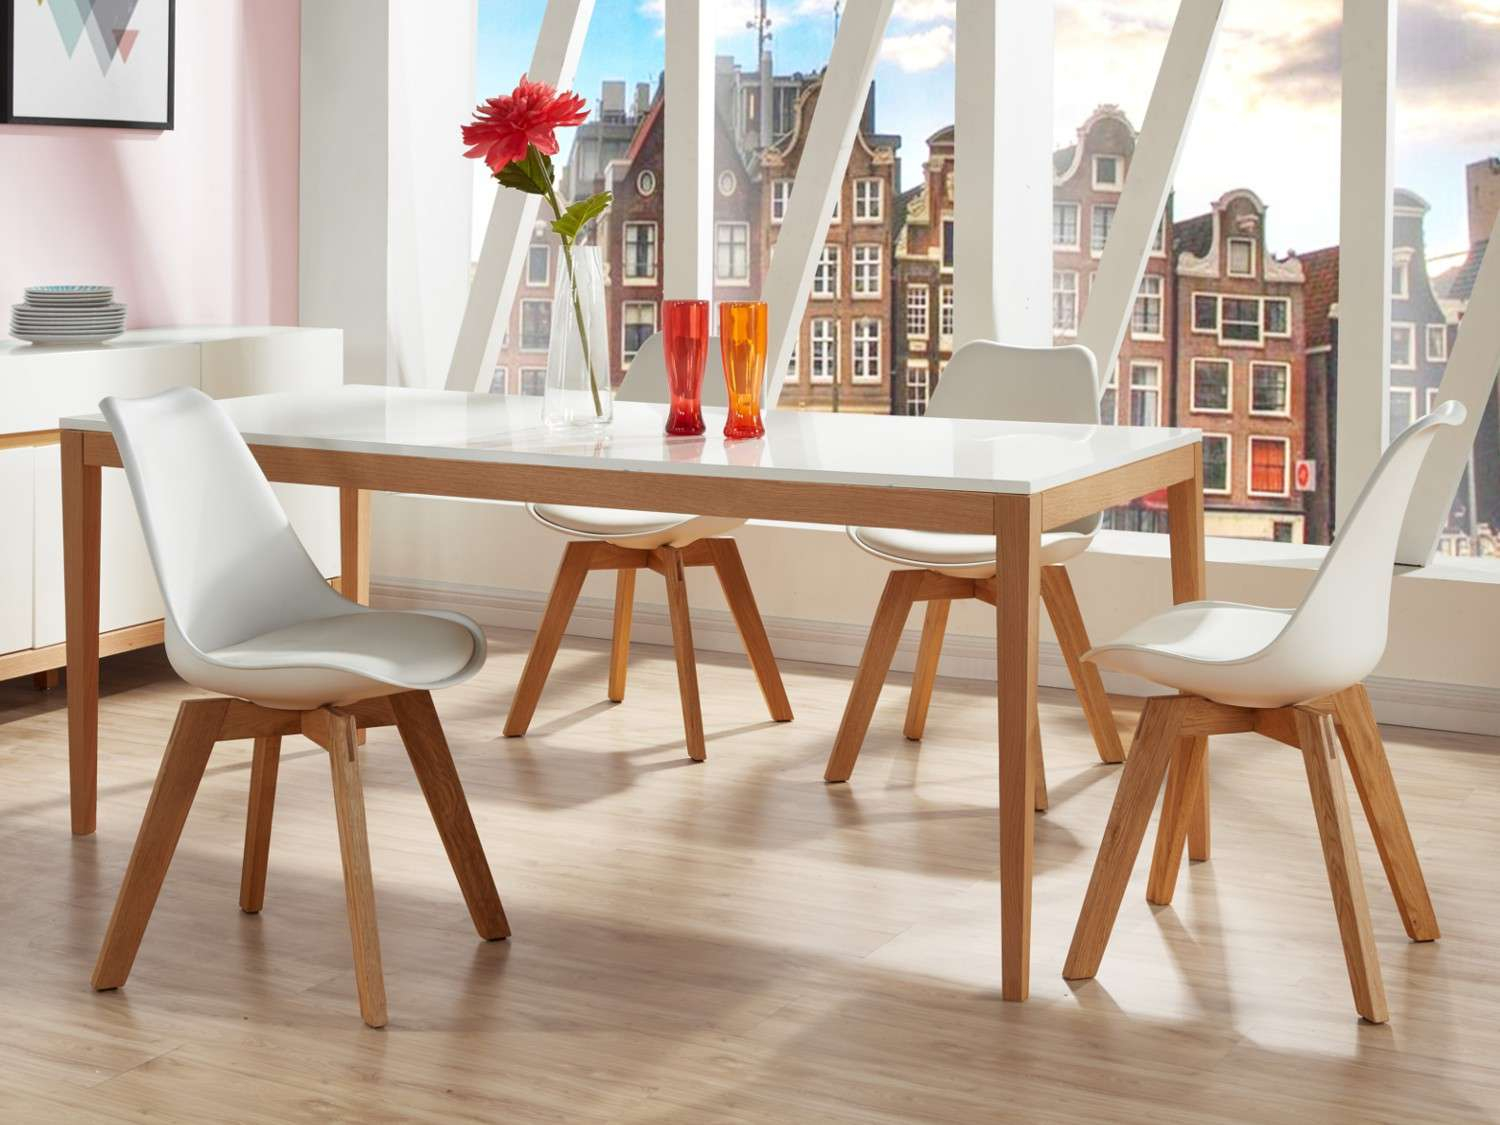 Table Chaises Scandinaves Ensemble Table Et Chaise Scandinave Boutique Gain De Place Fr